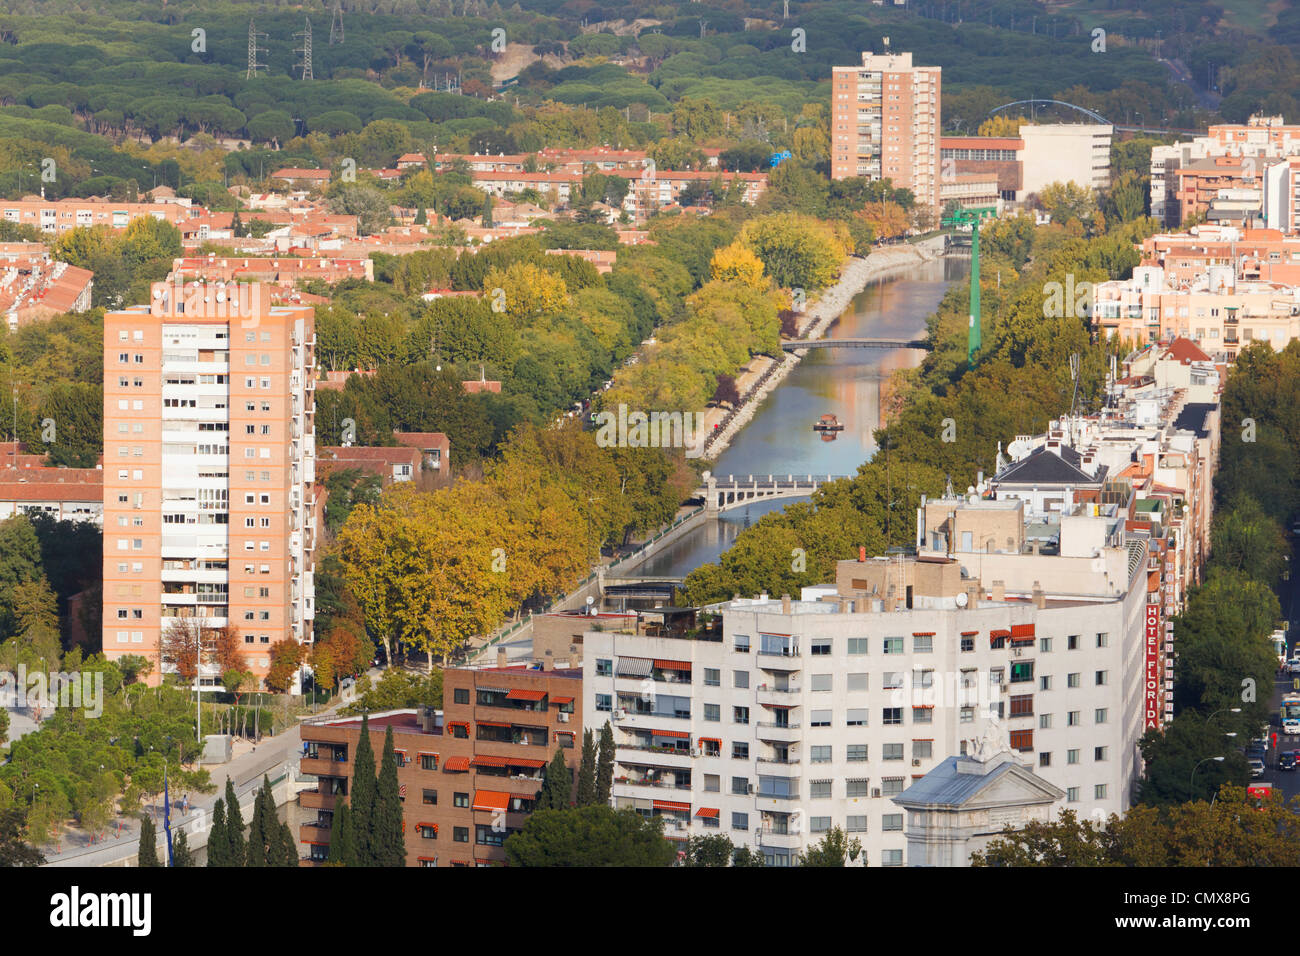 Madrid, Spain. Apartment blocks in western area of the city. Manzanares river. Parklands. - Stock Image